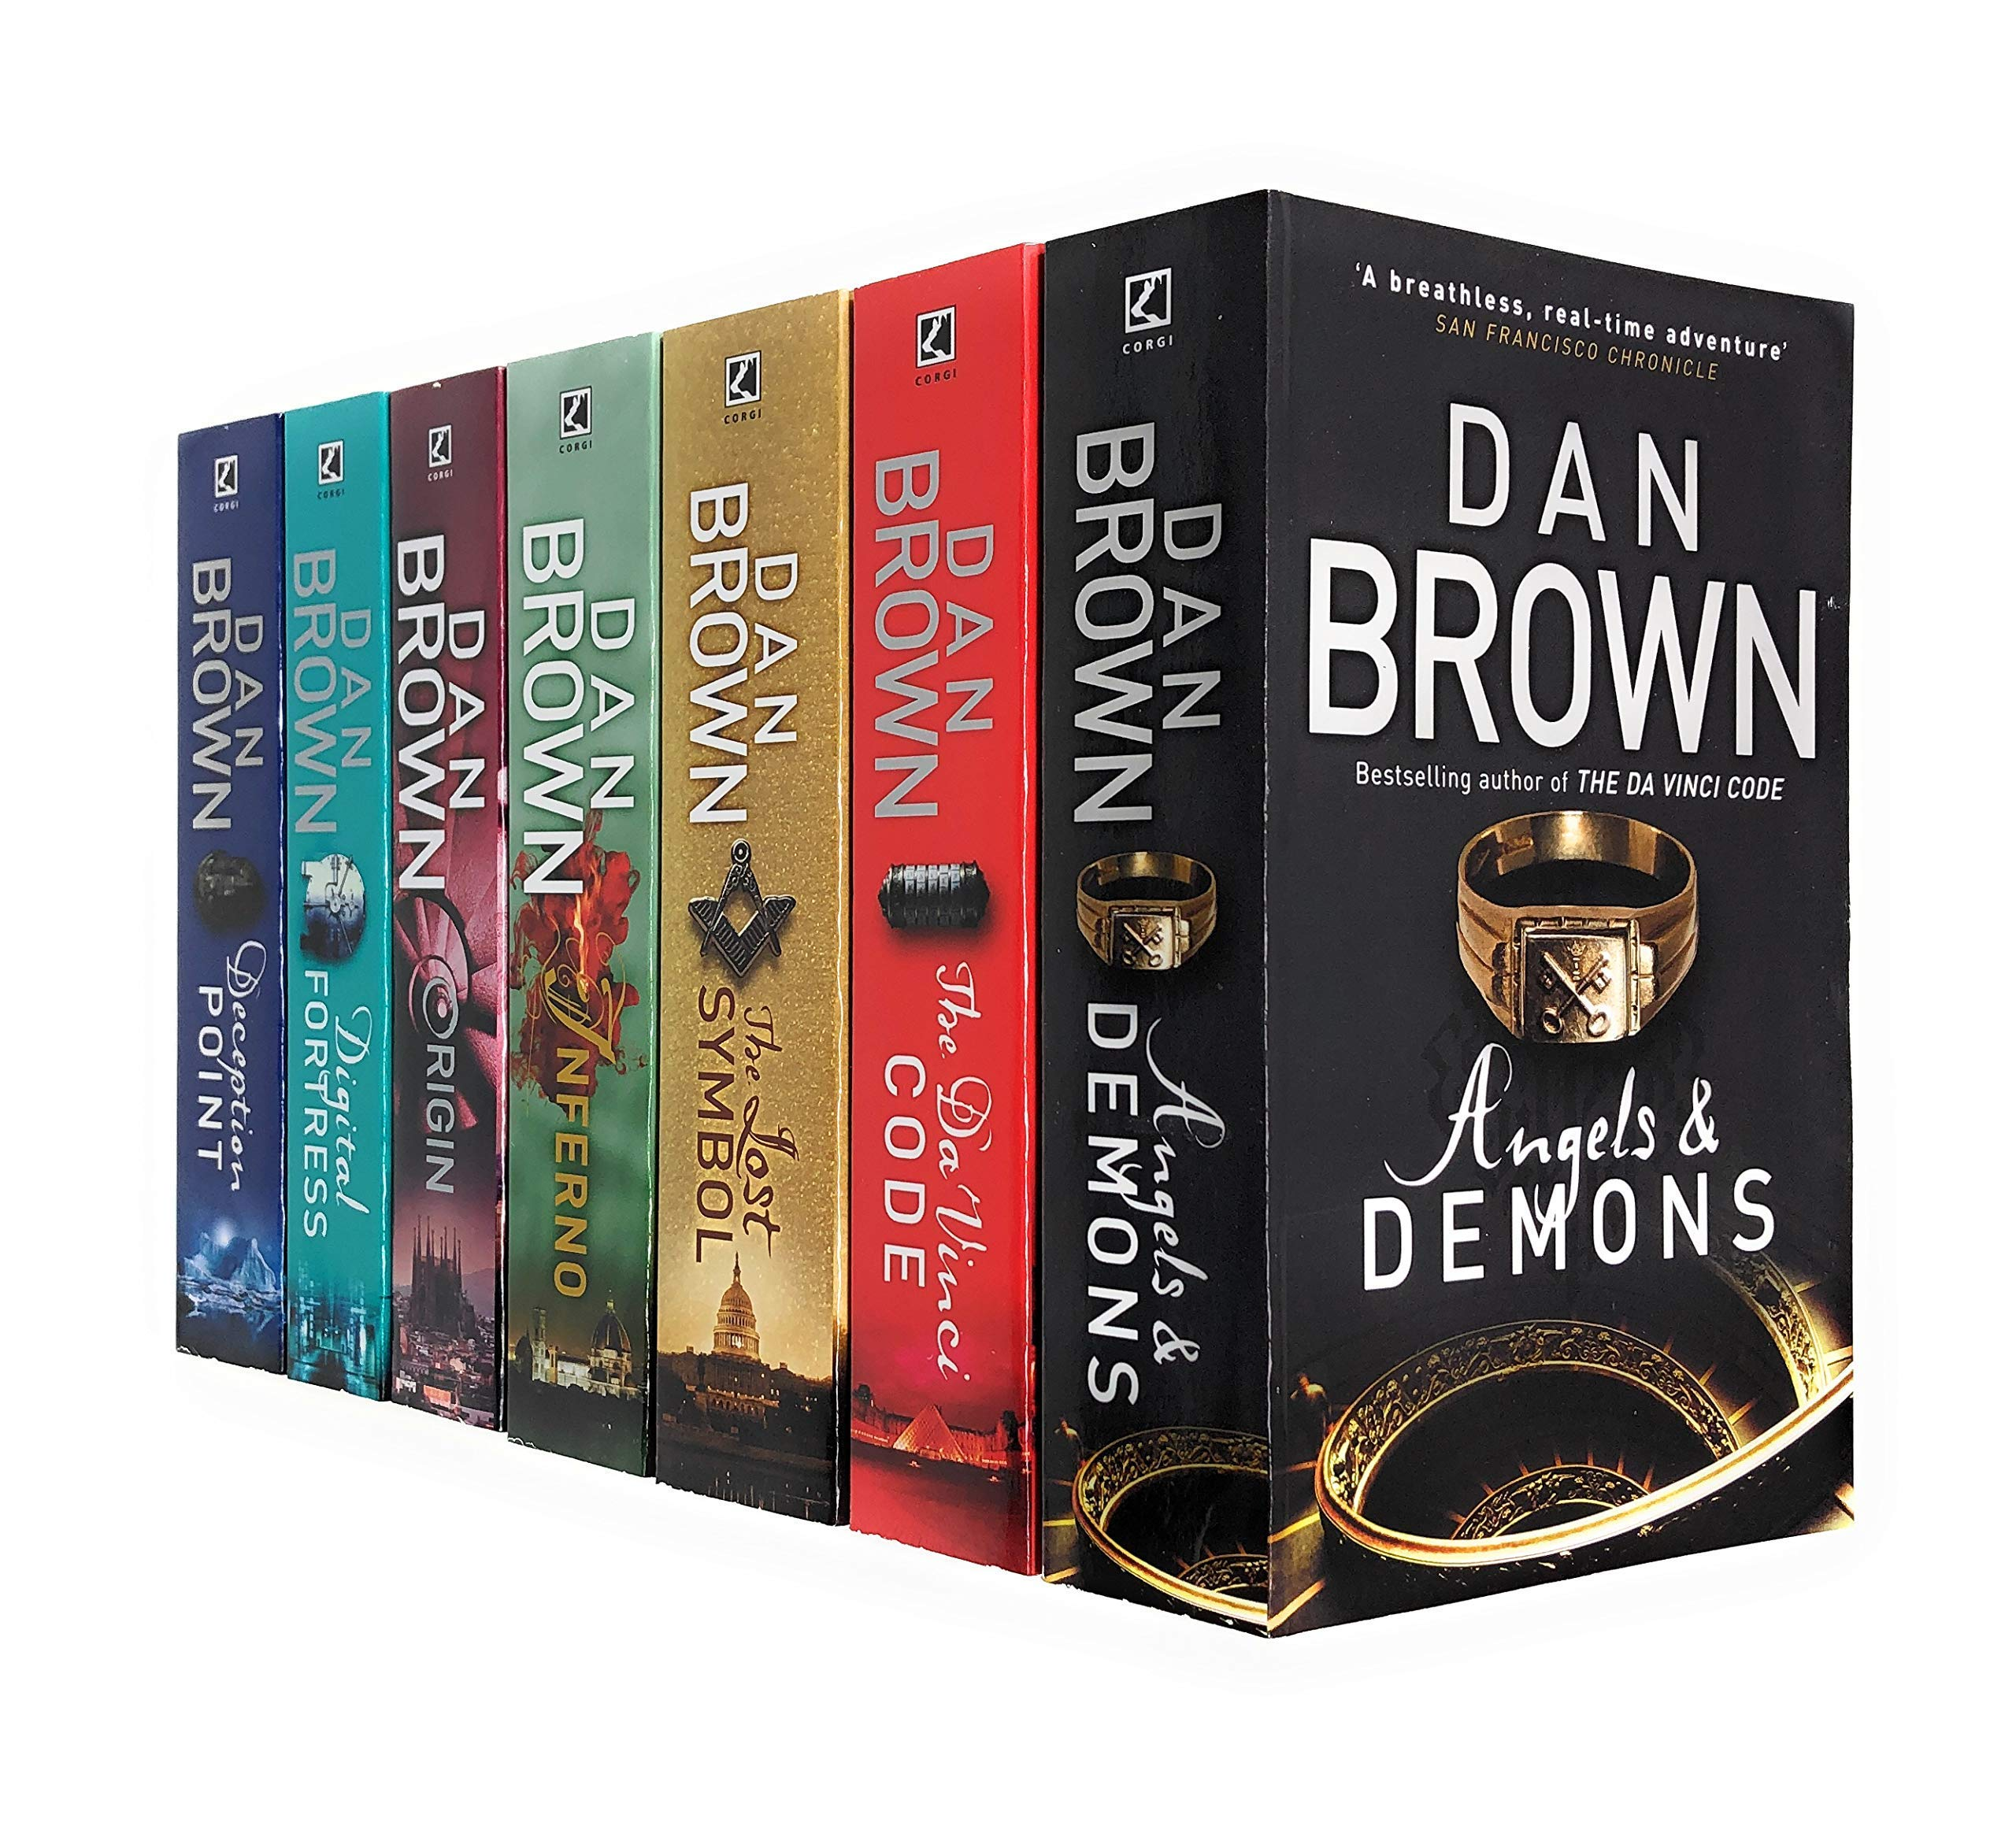 Amazon.com: Robert Langdon Series Collection 7 Books Set By Dan Brown (Angels And Demons, The Da Vinci Code, The Lost Symbol, Inferno, Origin, Digital Fortress, Deception Point) (9789123651252): Dan Brown, Angels &